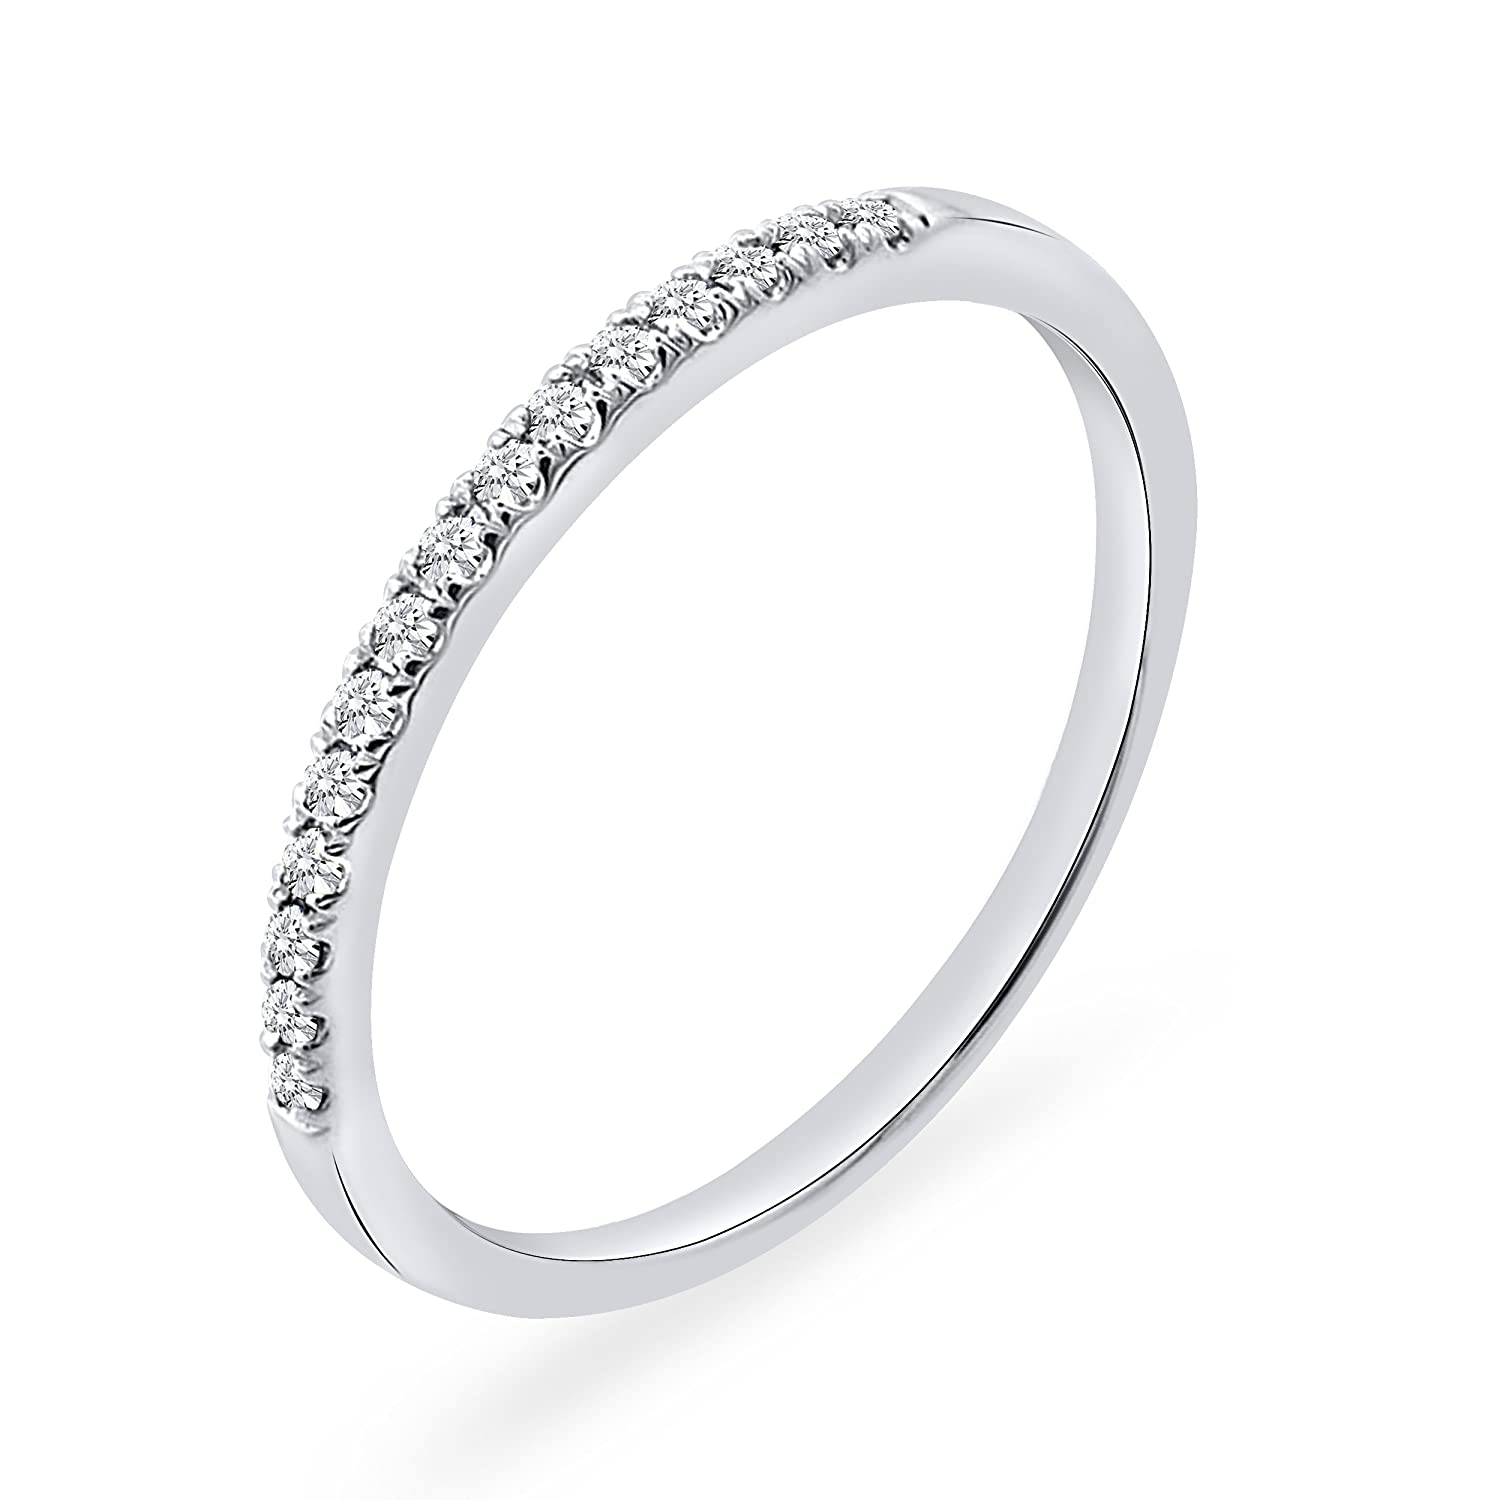 925 Sterling Silver 0.10 CT. Round Natural Diamond Anniversary Wedding Band For Women Rare Earth Diamond Jewellery RG000189A-925-P